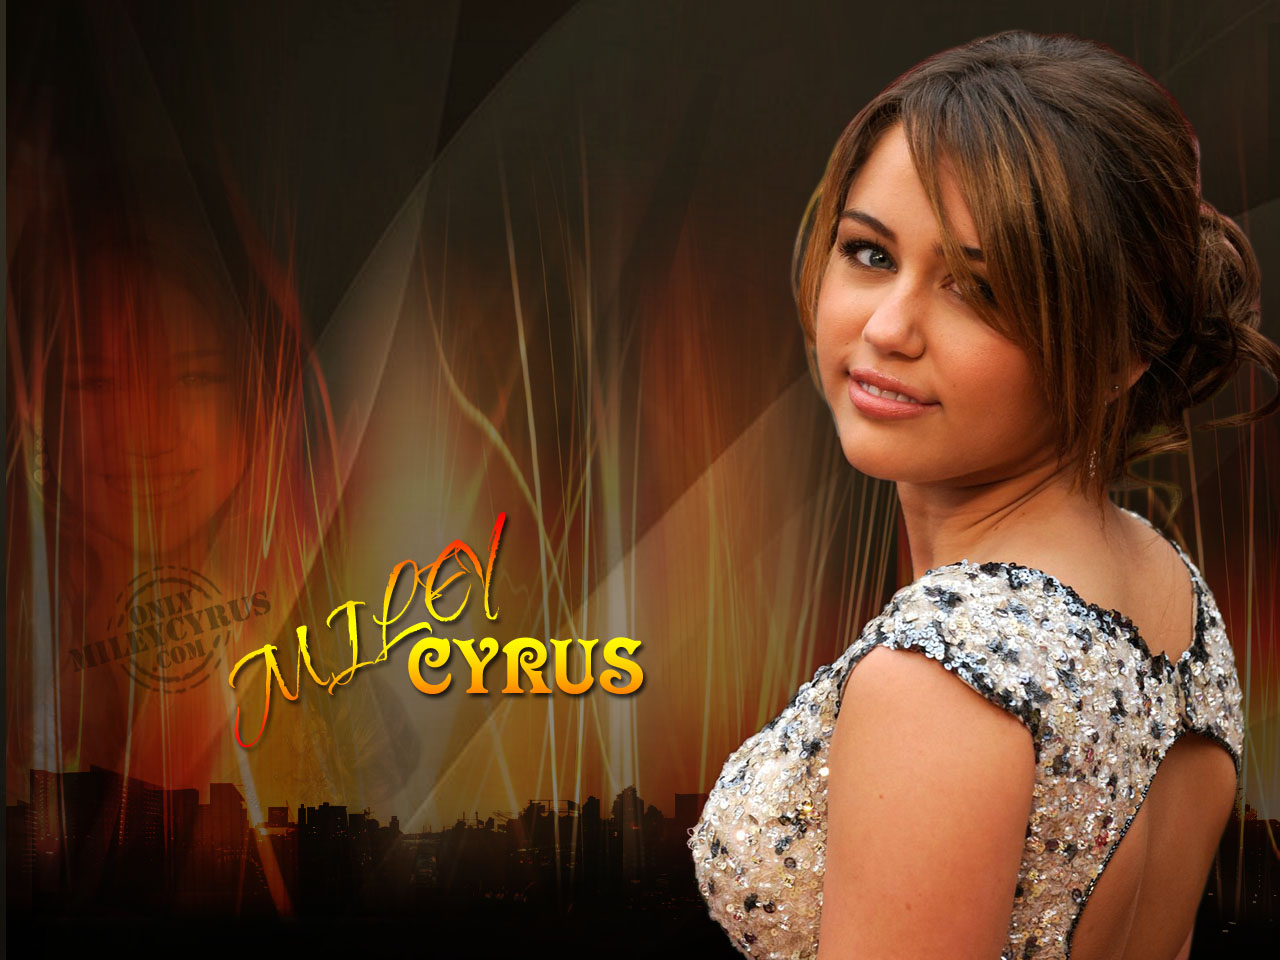 ALL WALLPAPER  hollywood actress wallpaper